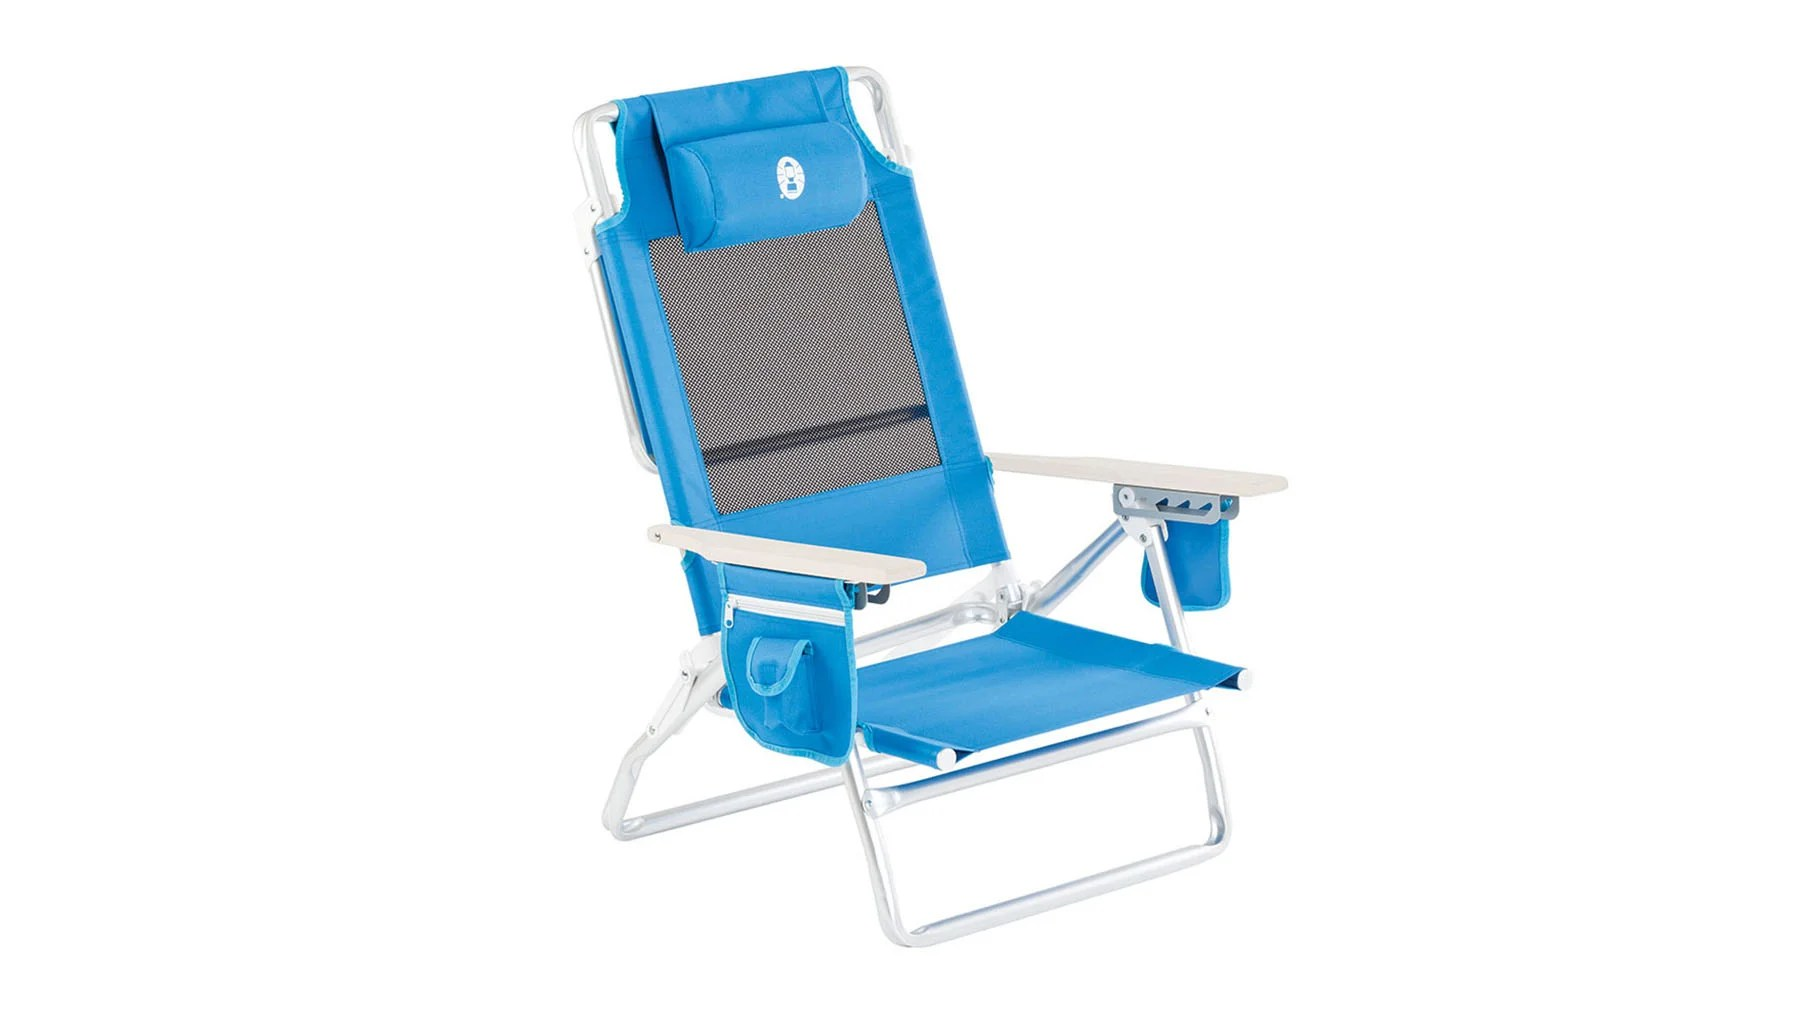 Sunbathing Chairs Best Camping Chairs The Best Chairs For Summer Camping From 10